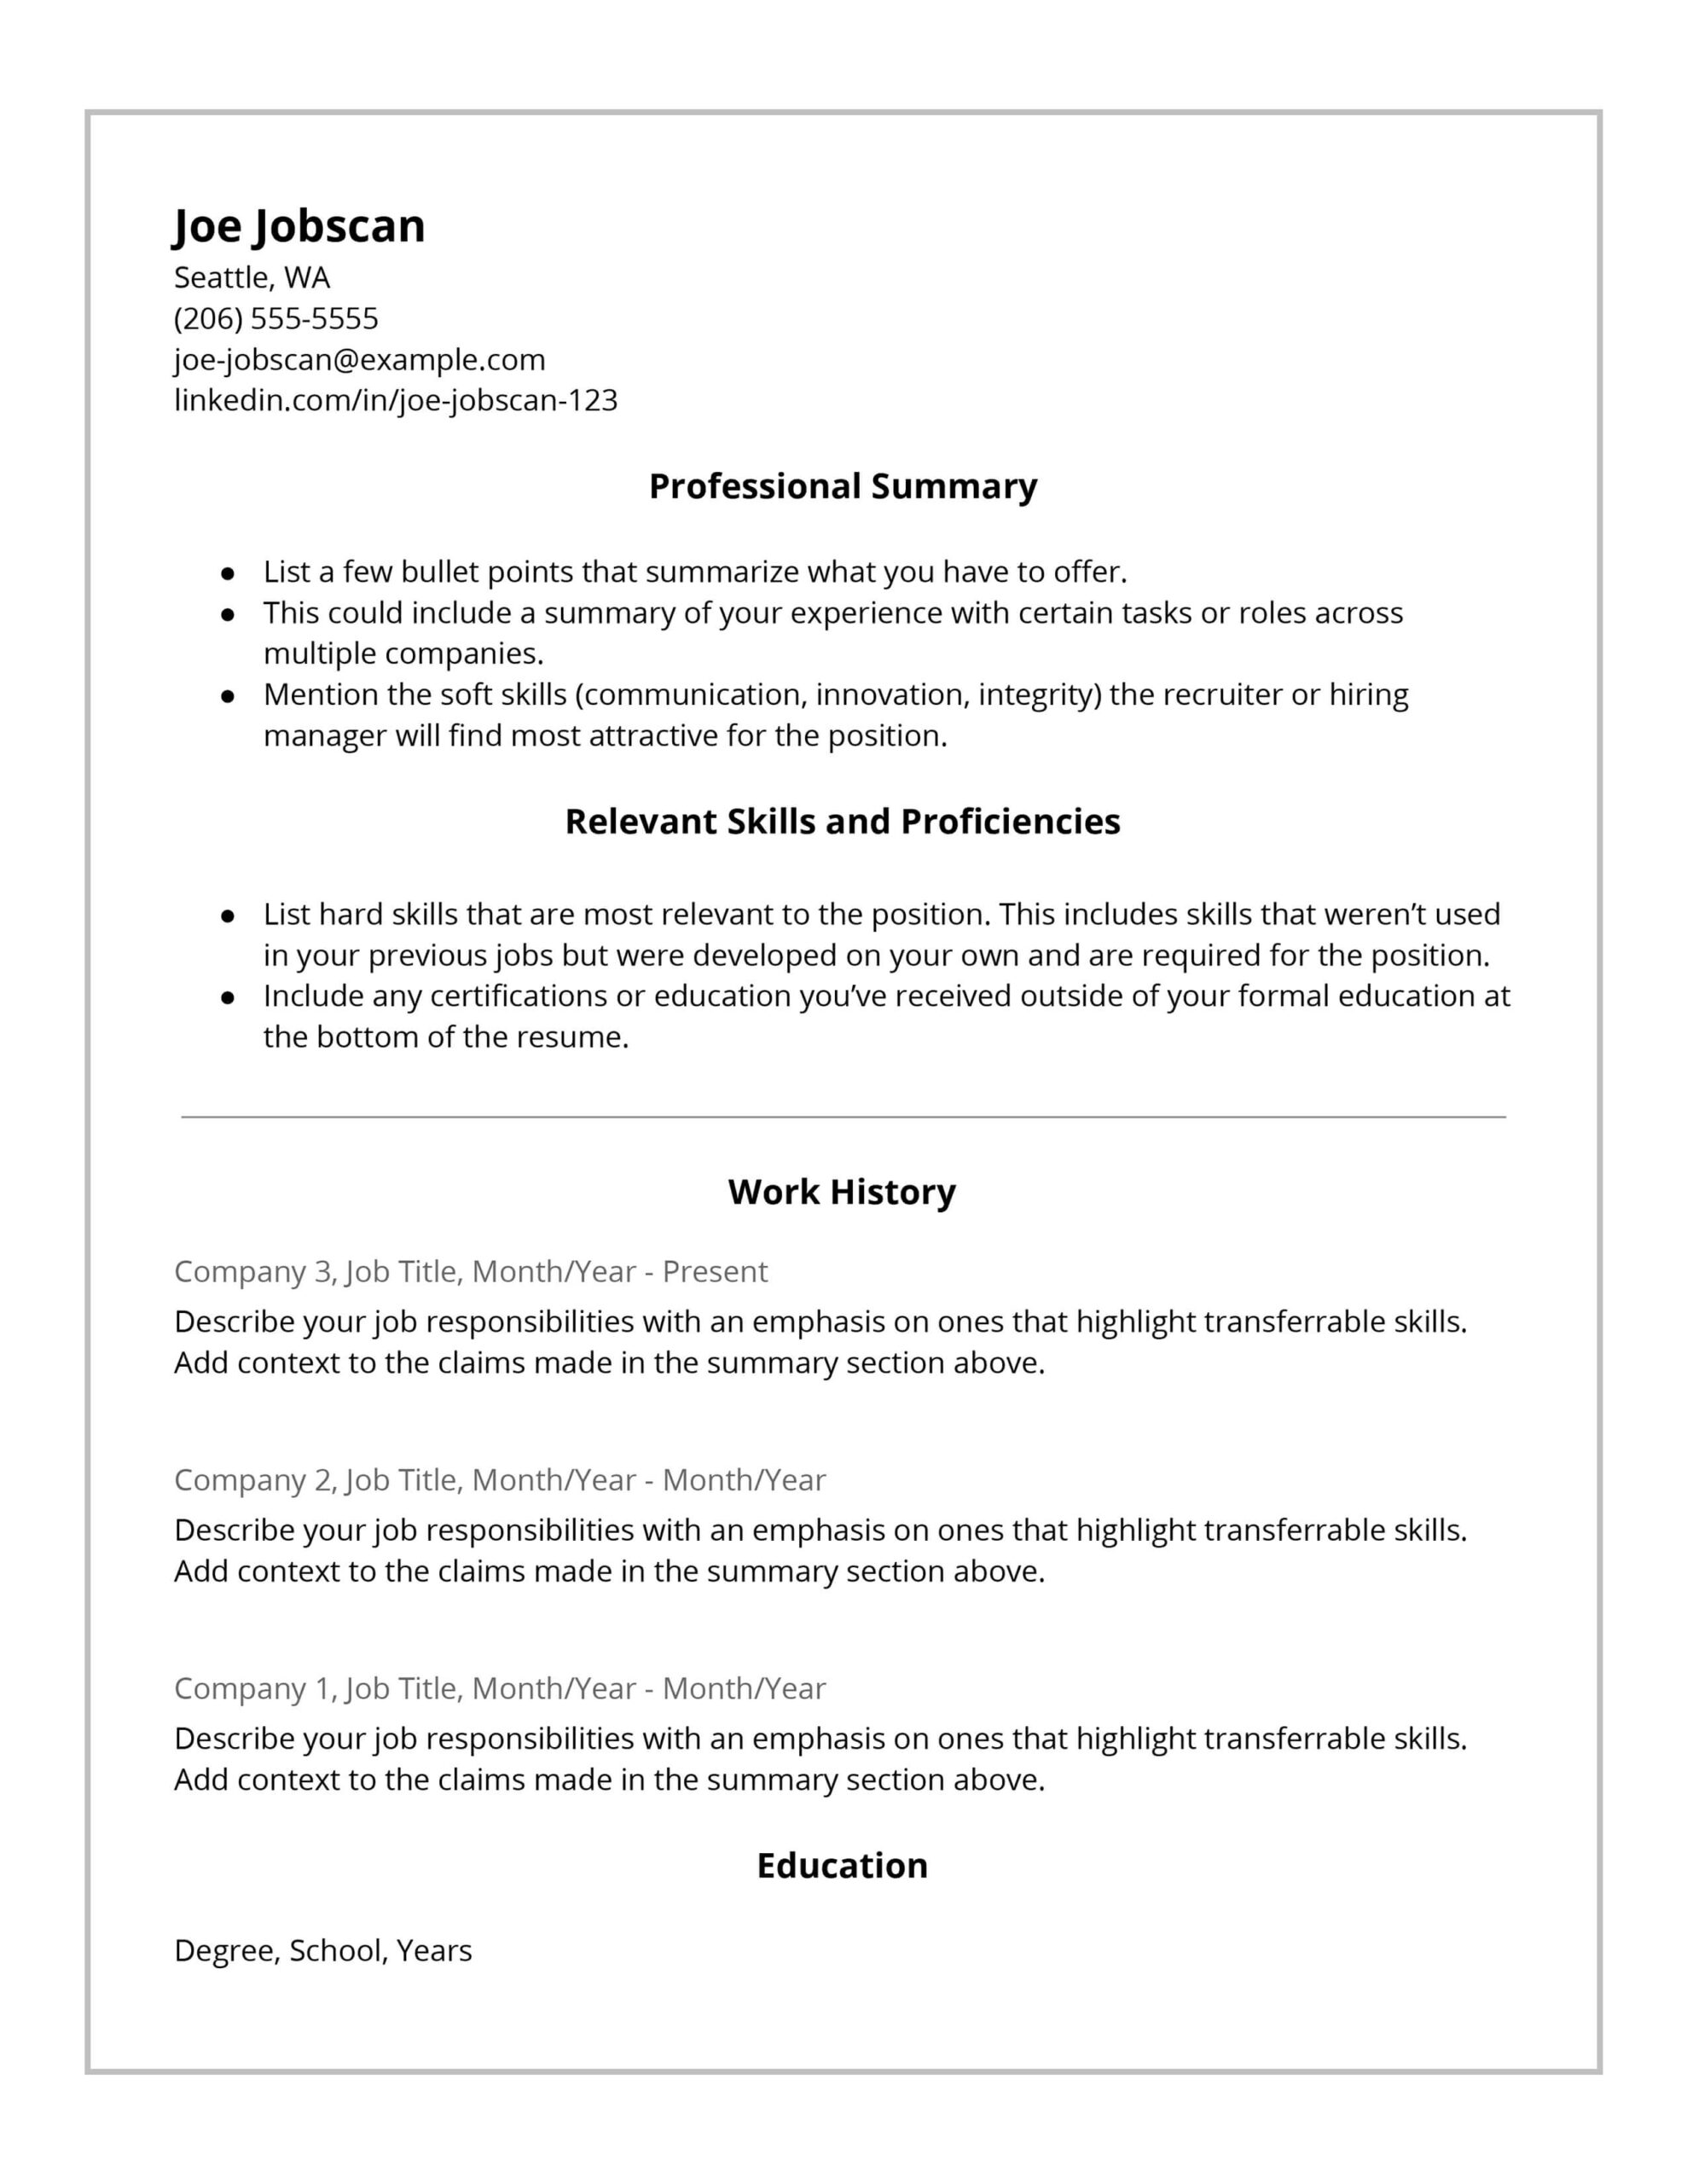 recruiters hate the functional resume format here skill set template hybrid police Resume Skill Set Resume Template